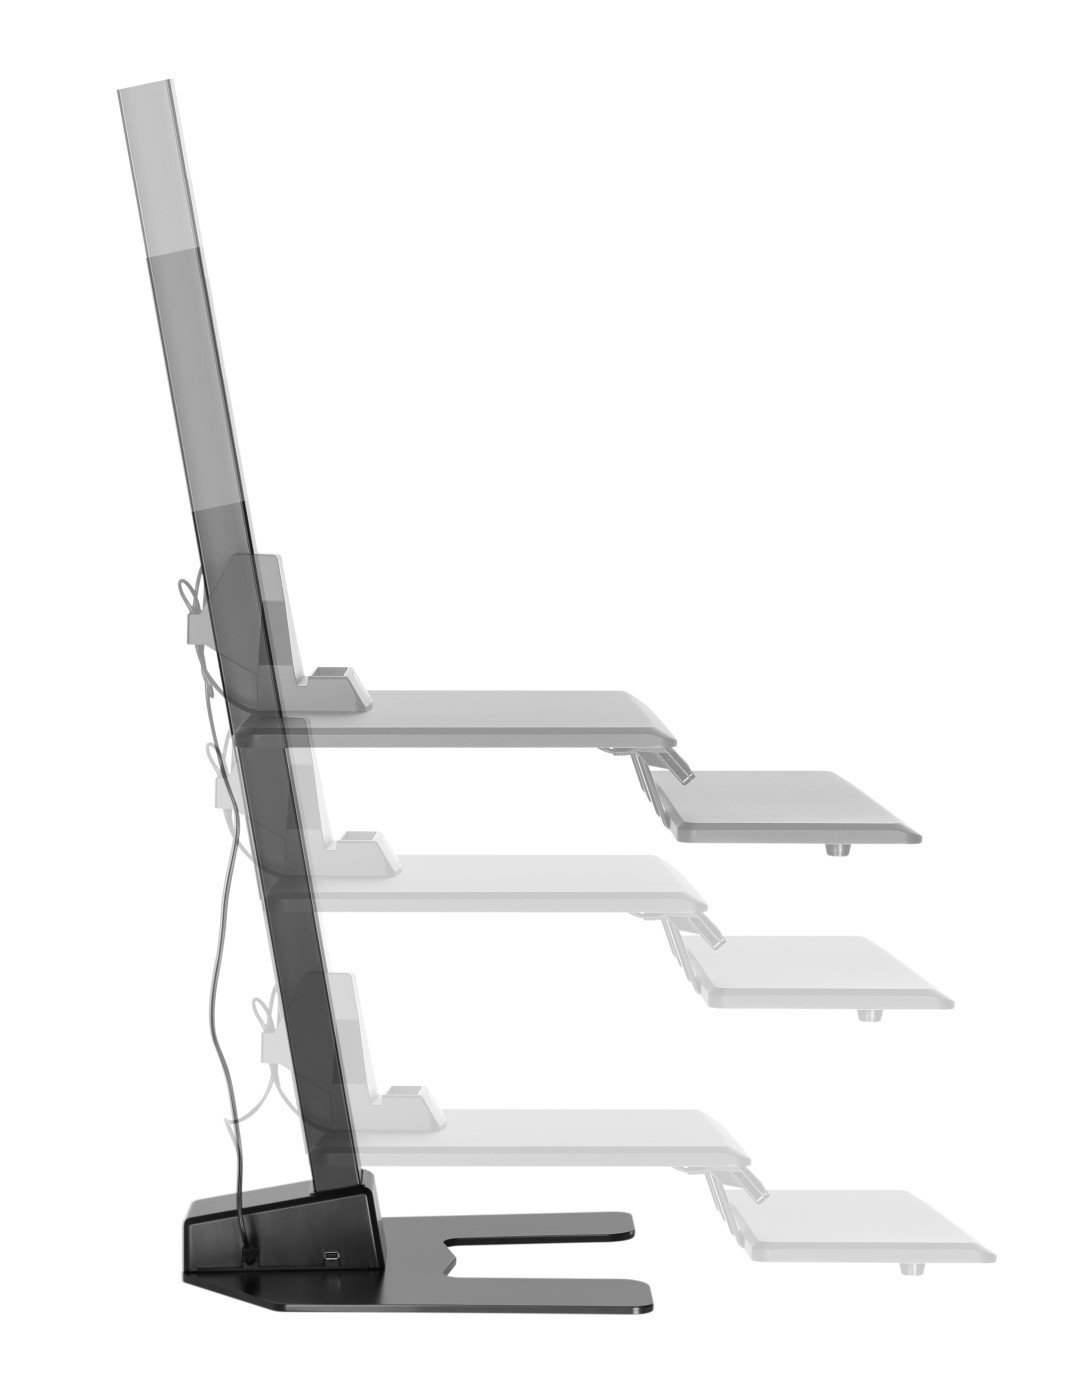 E-Lift side view showing height range